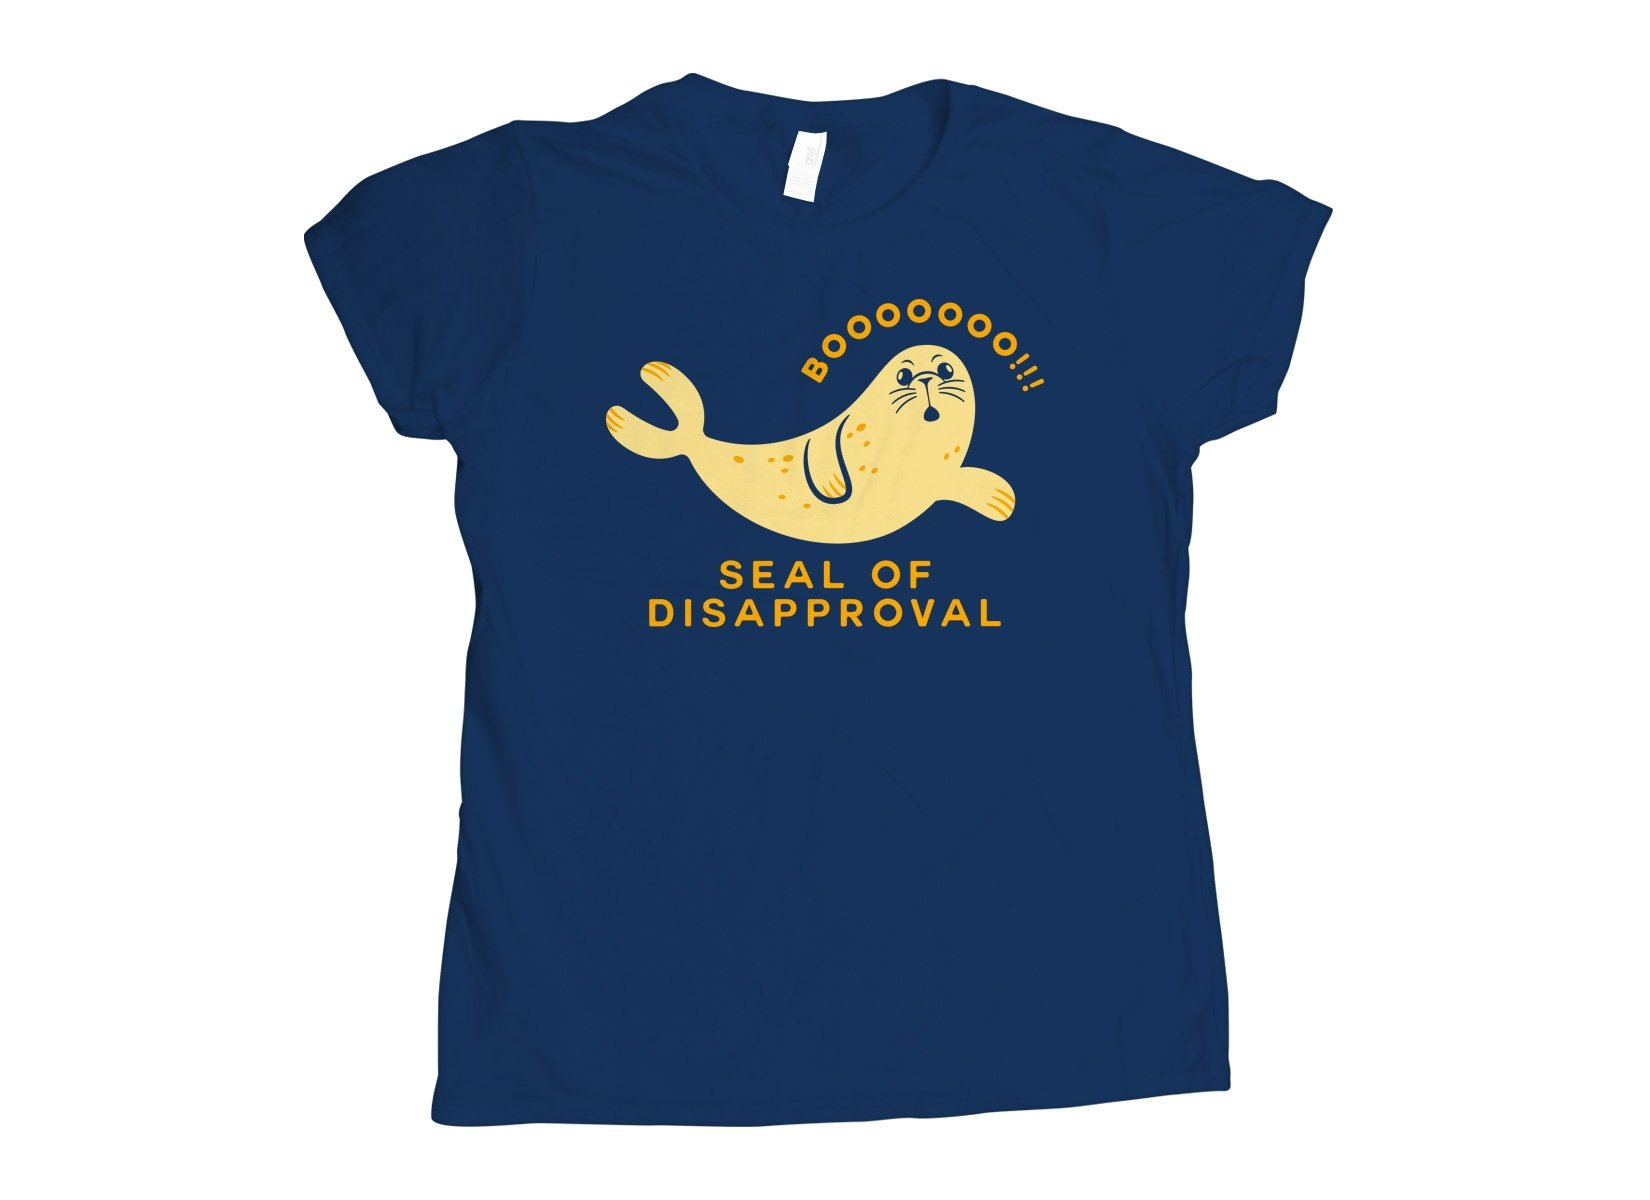 Seal Of Disapproval on Womens T-Shirt